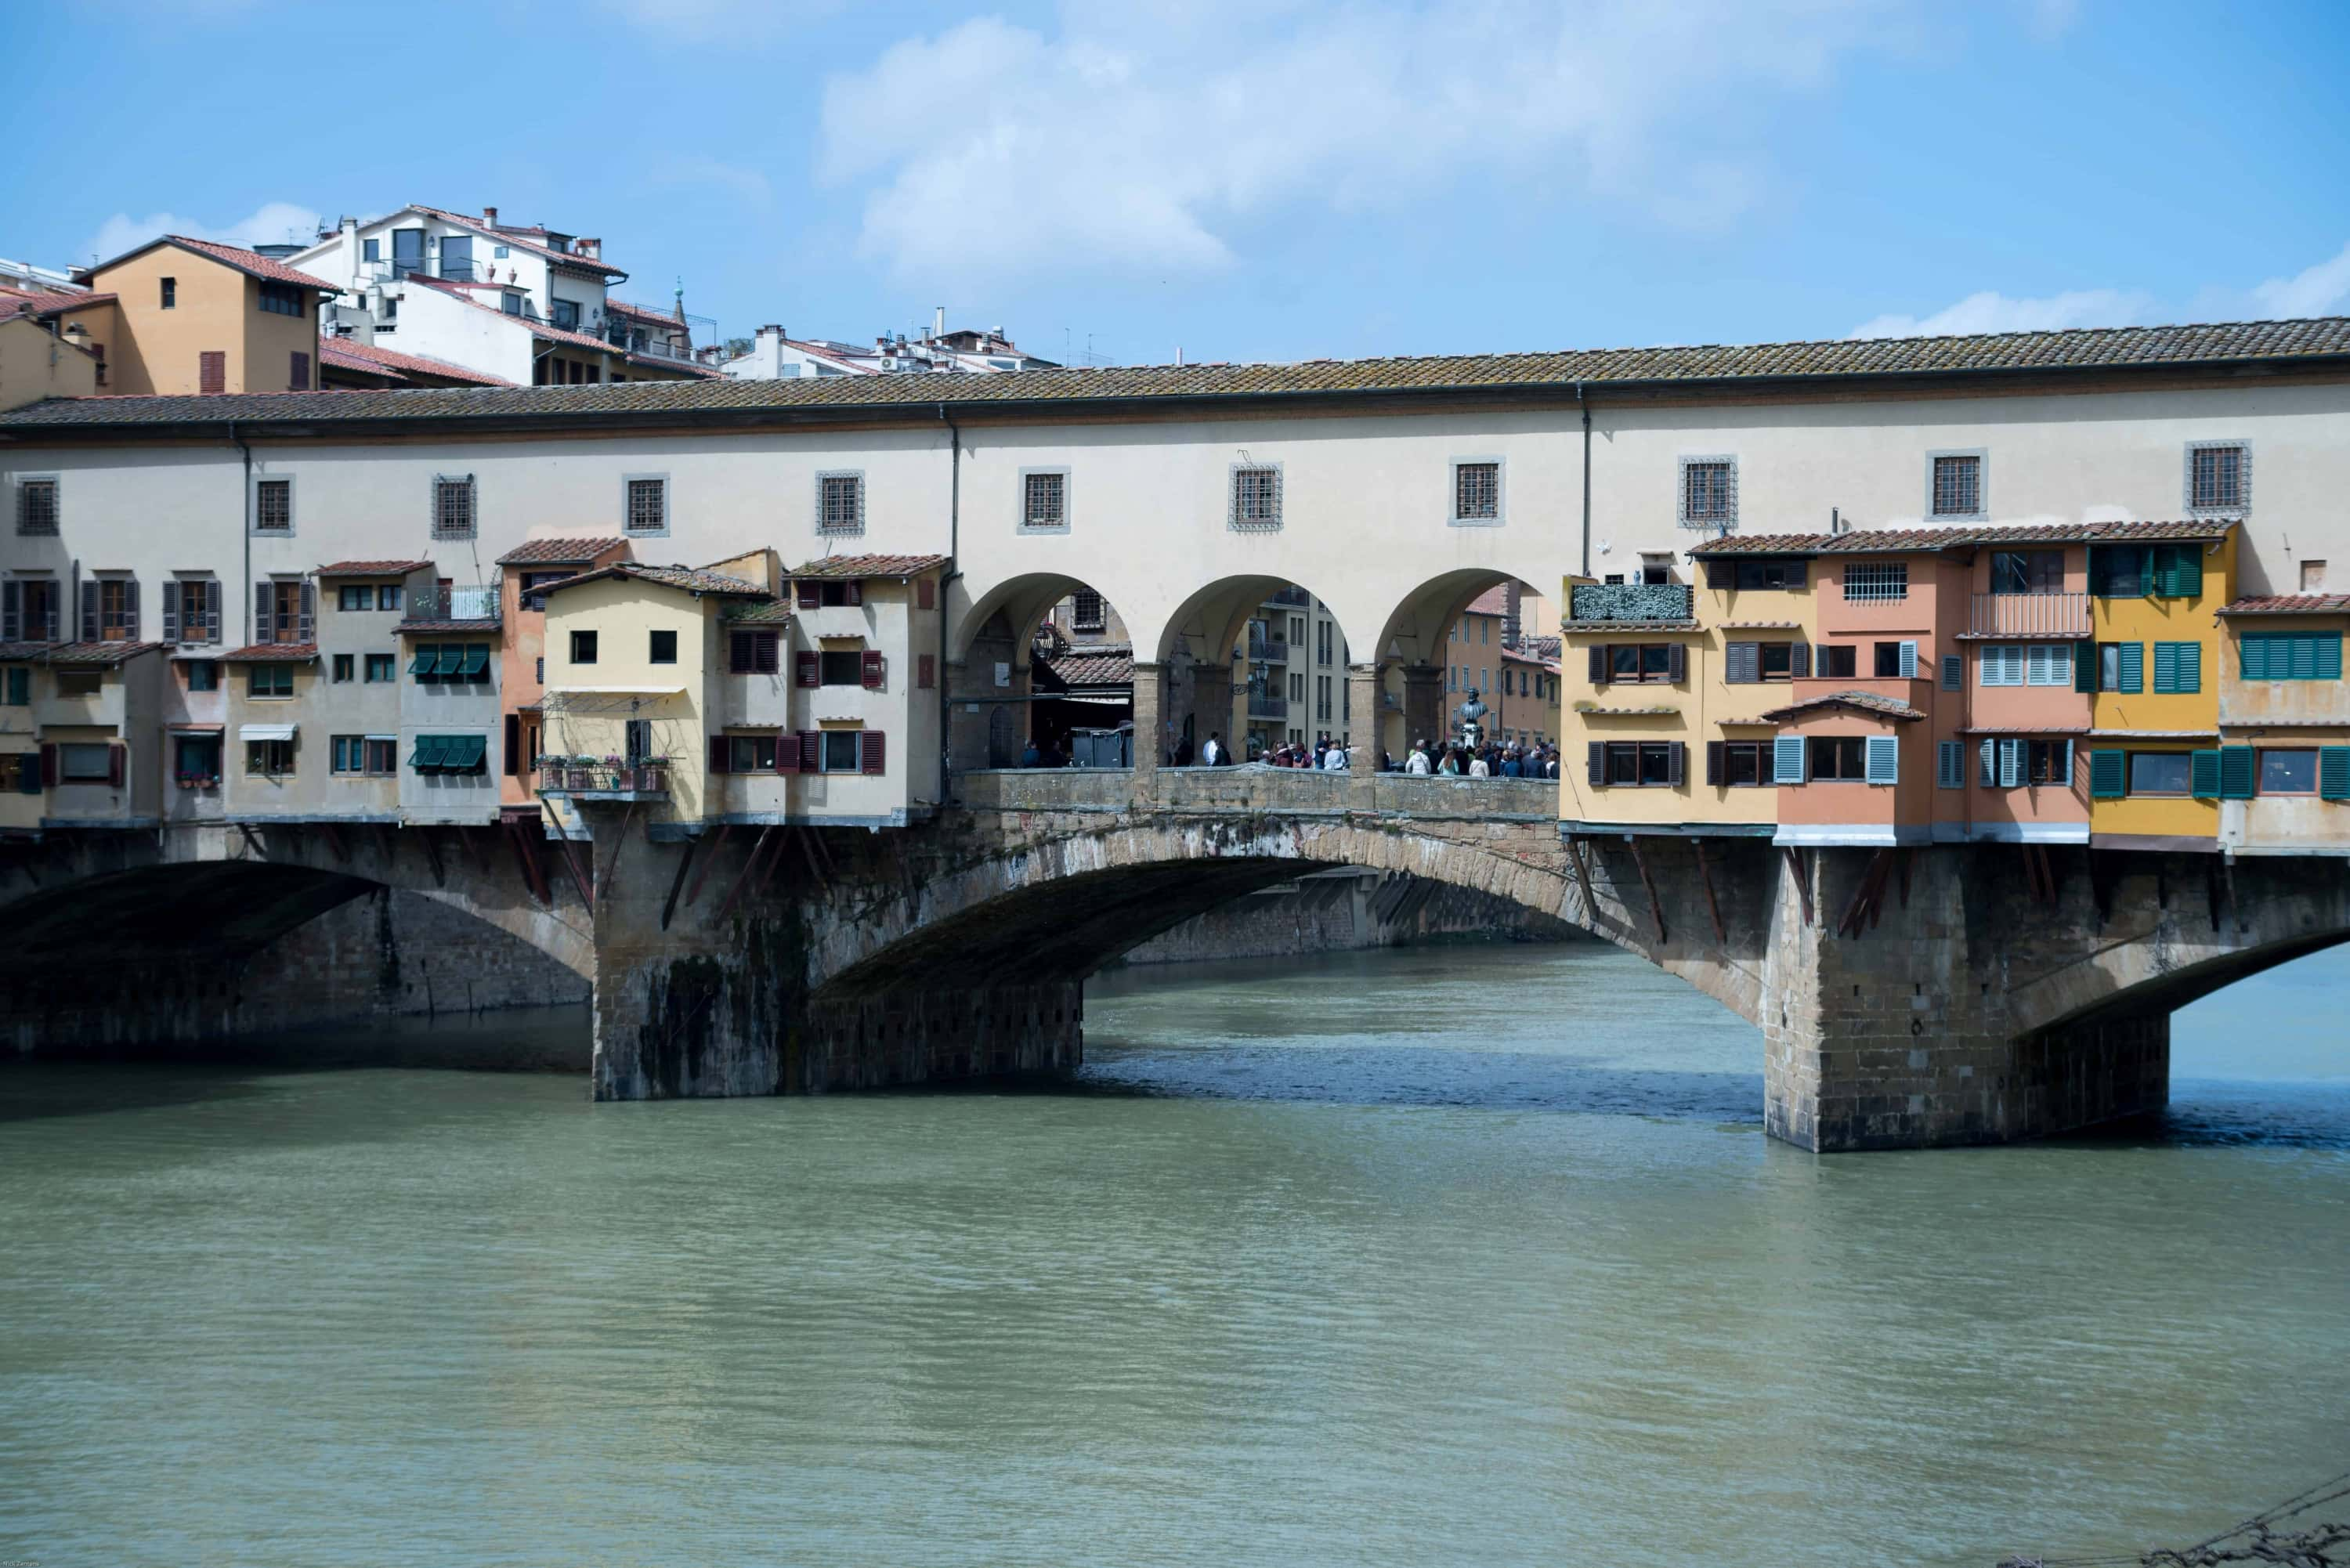 Covered bridge in Florence Italy